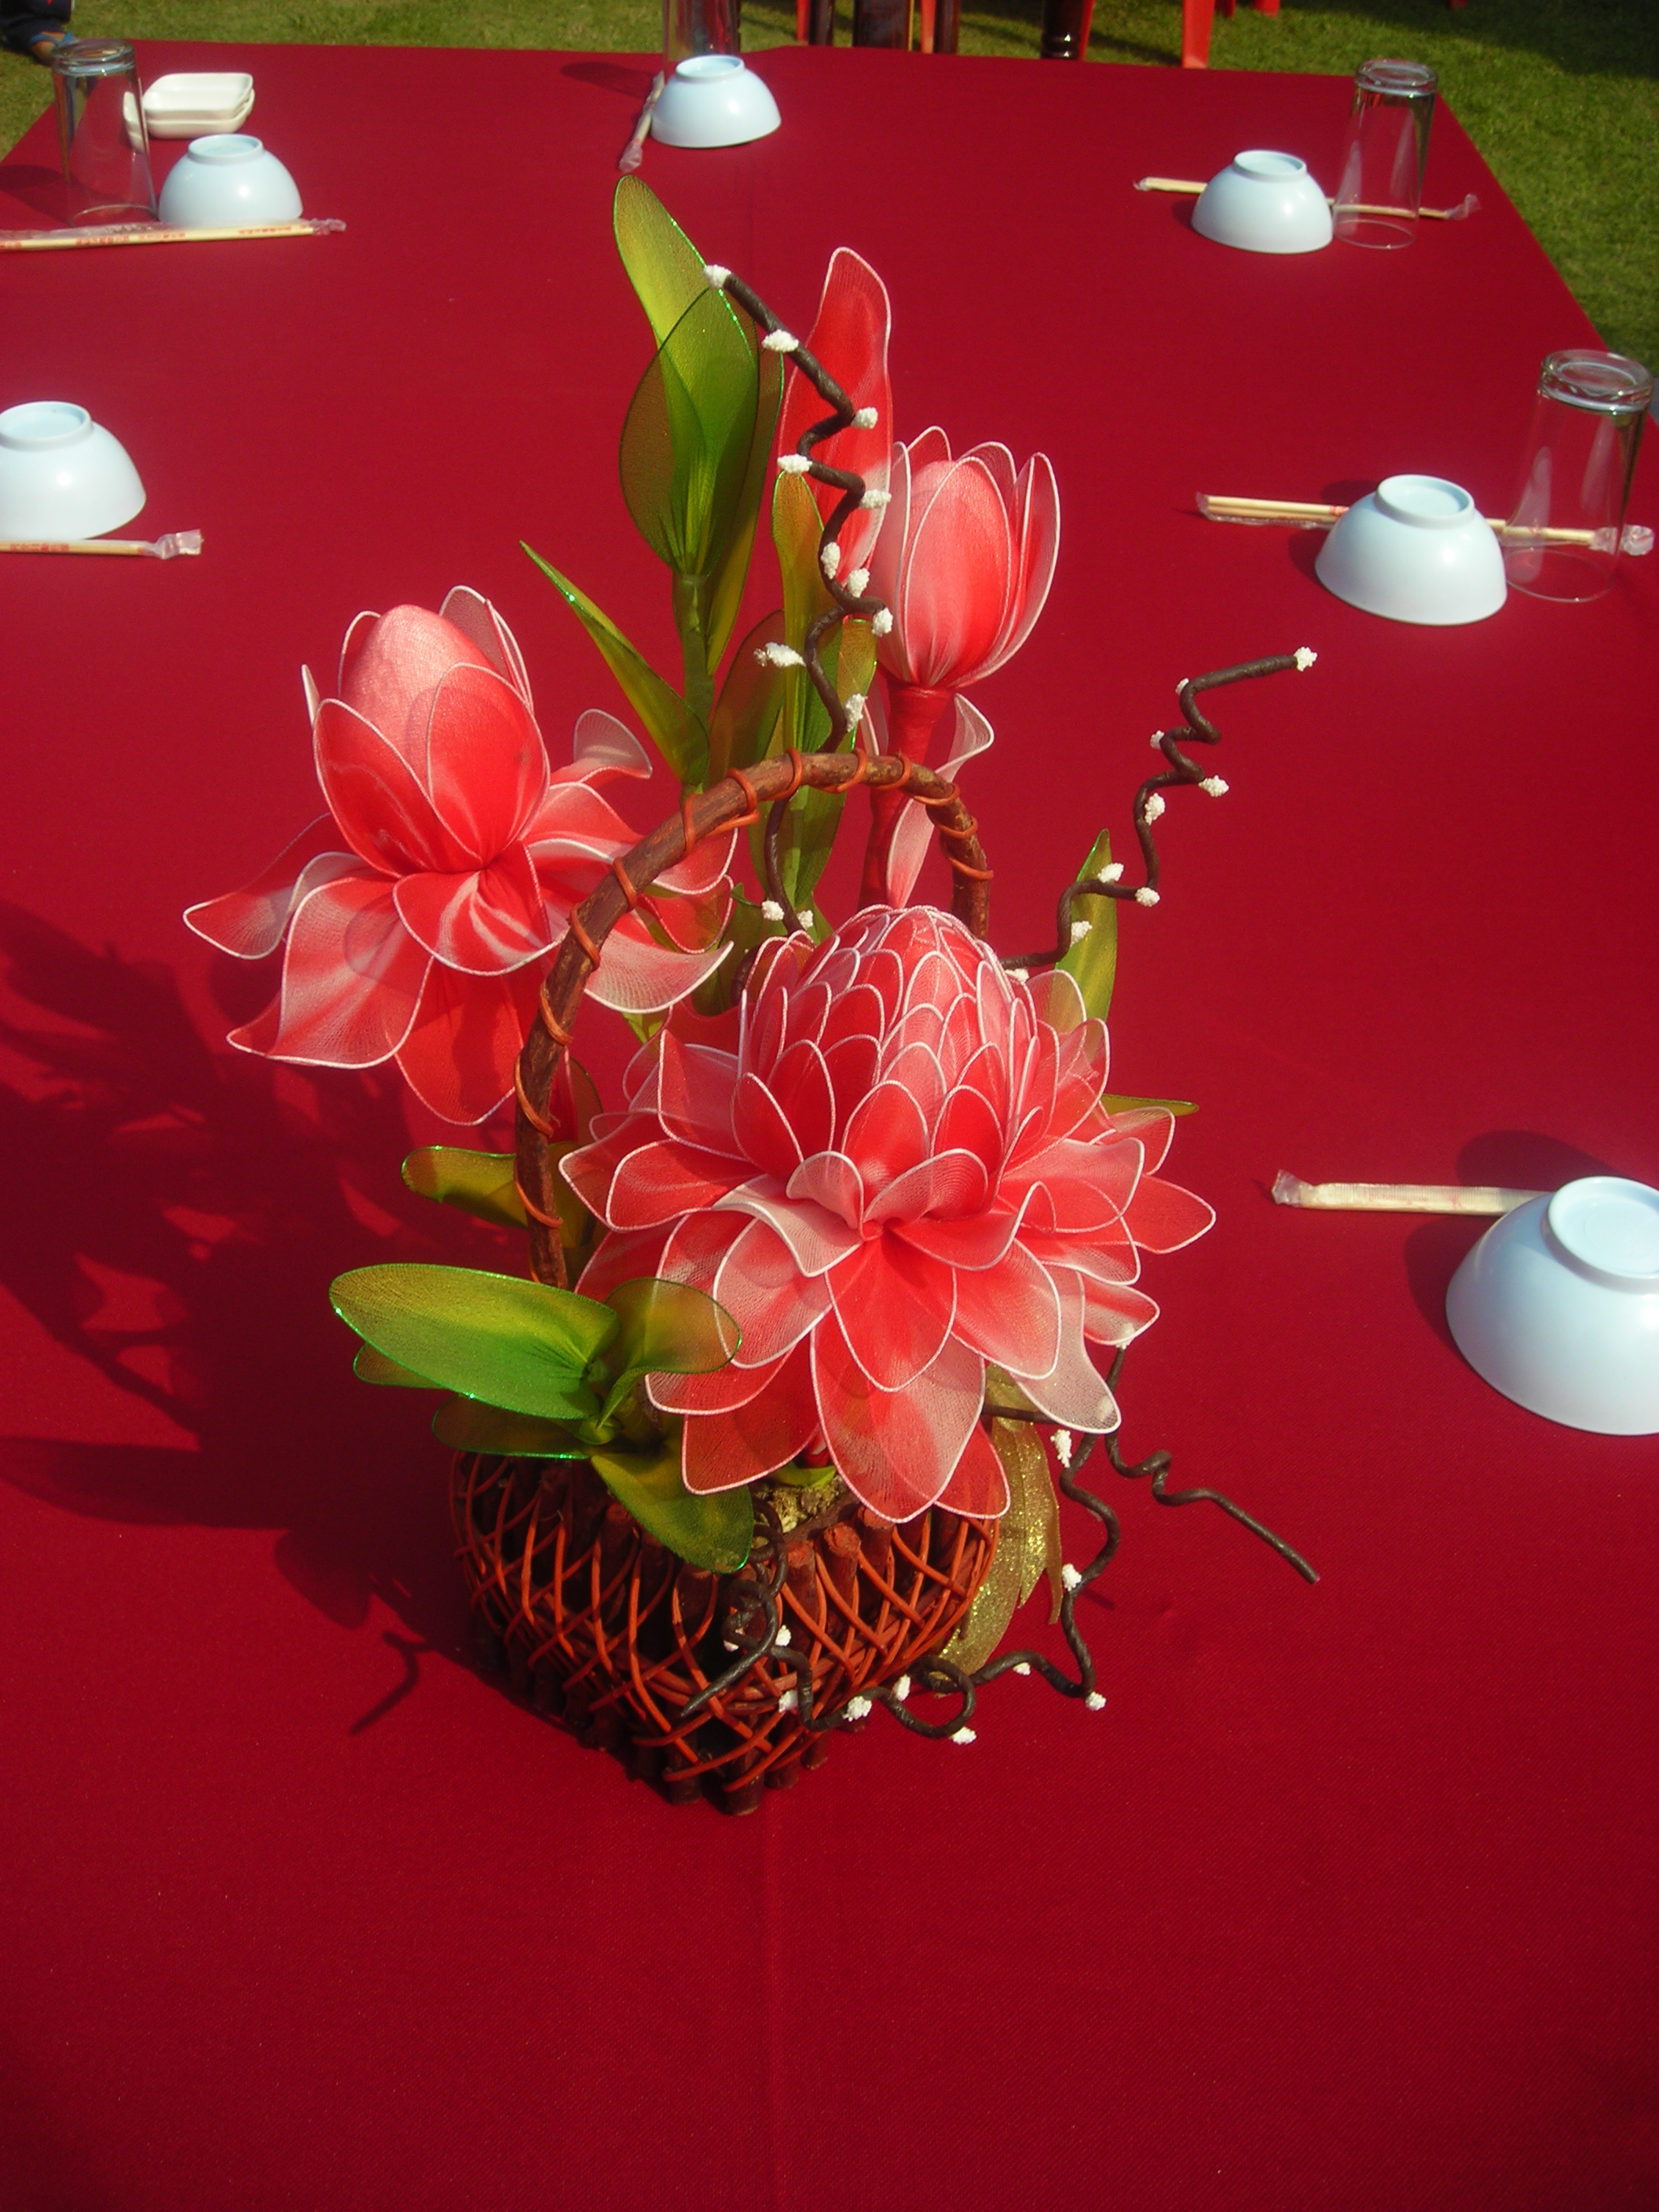 File:Red Artificial Flower As Table Decoration.JPG